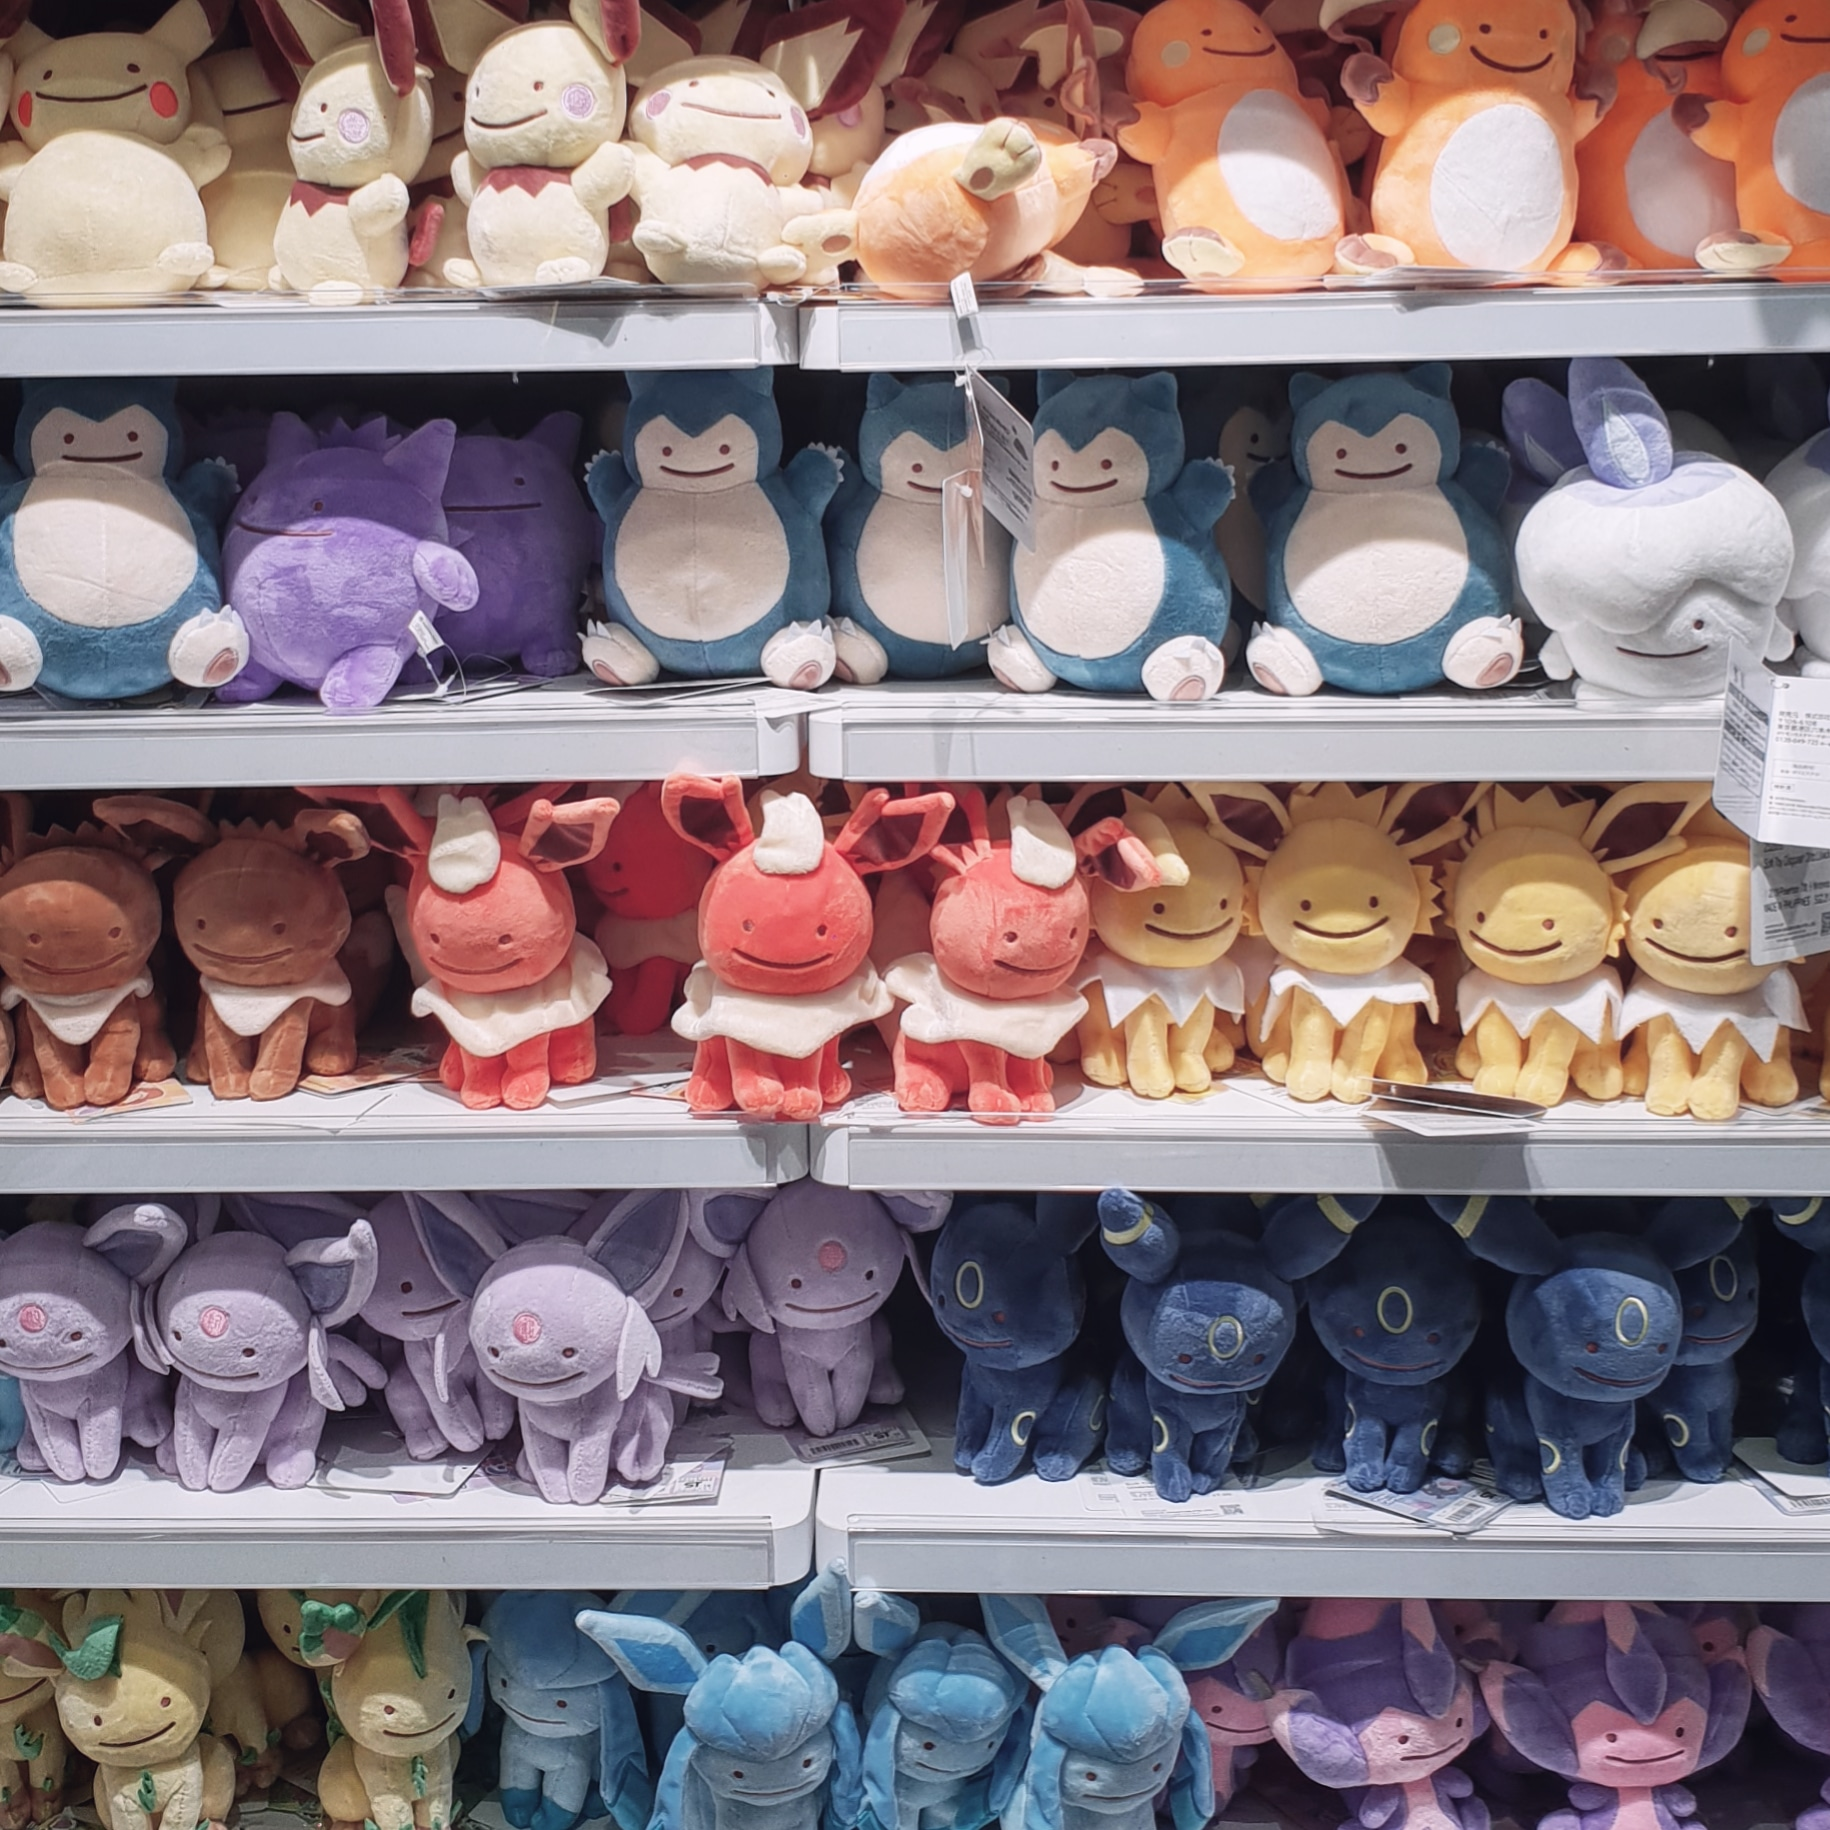 Pokemon plush toys.